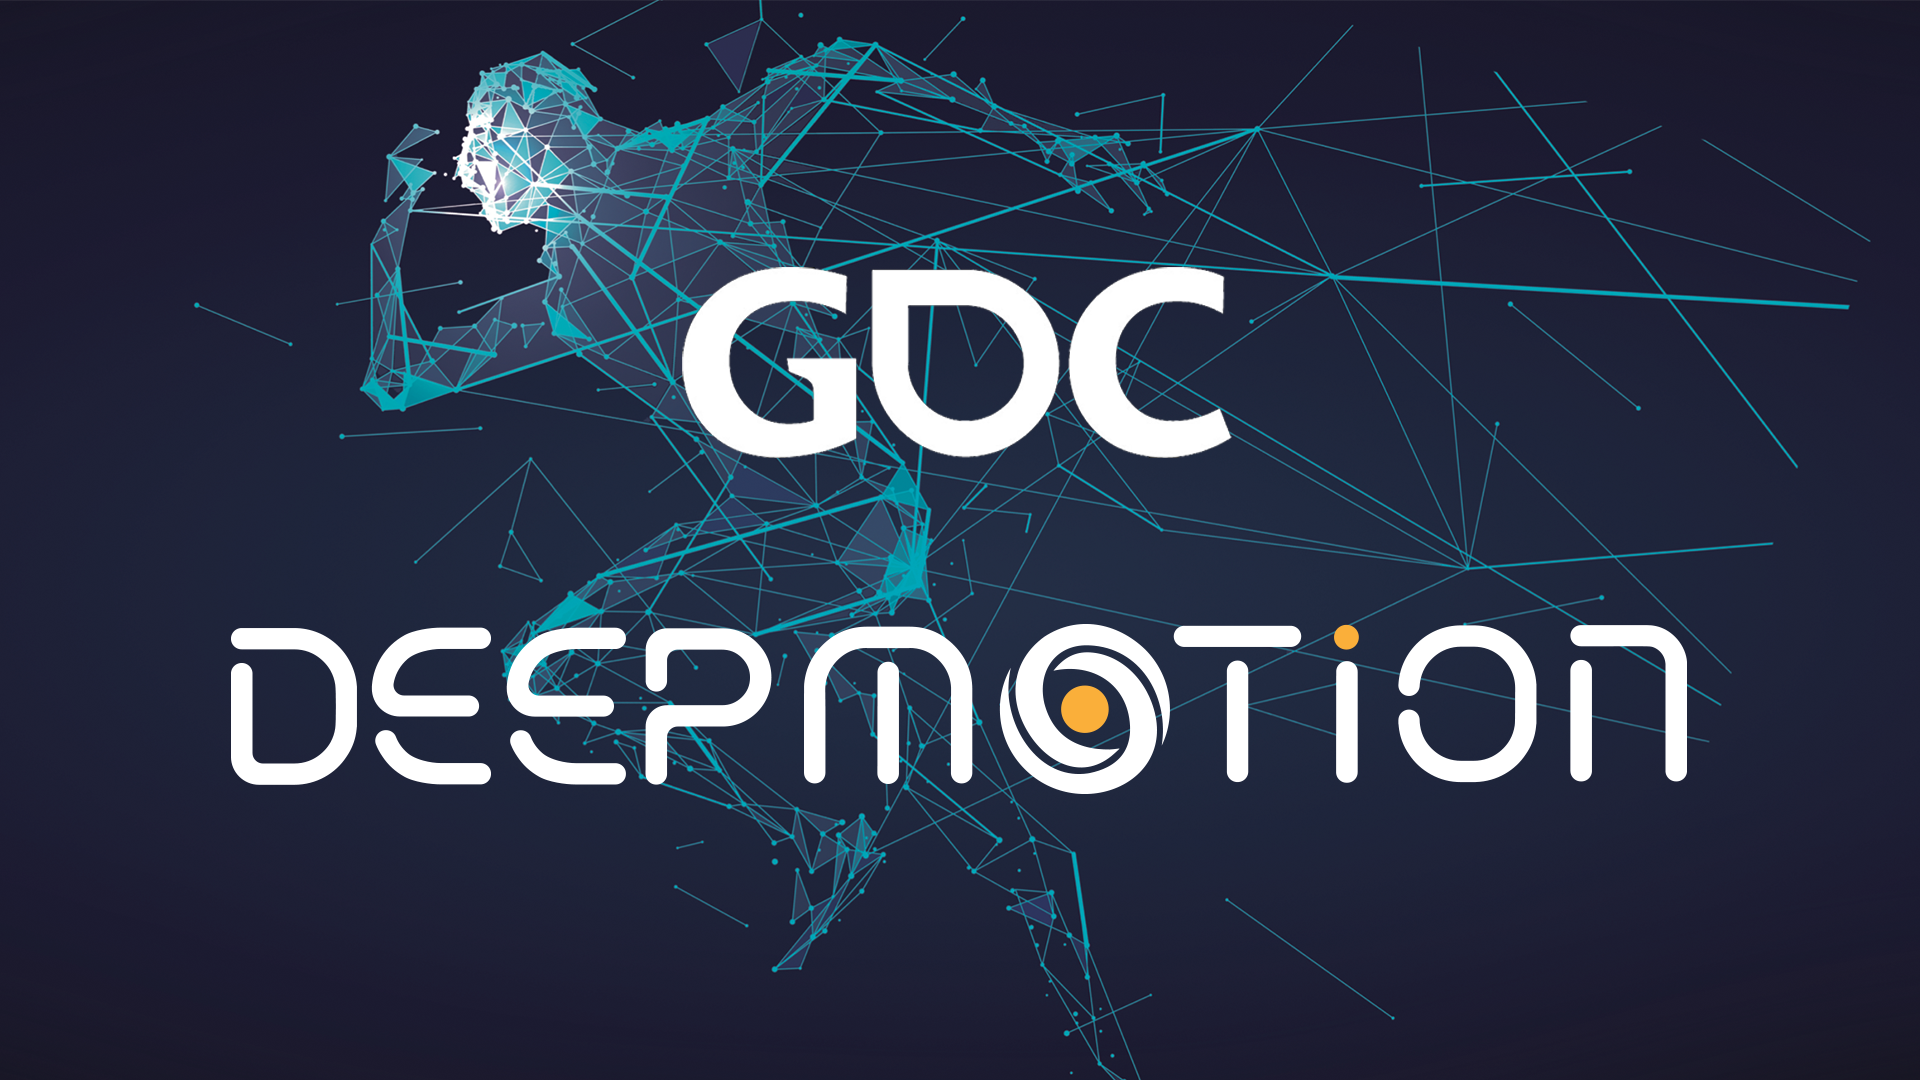 The Next Generation of Motion Intelligence Solutions from DeepMotion